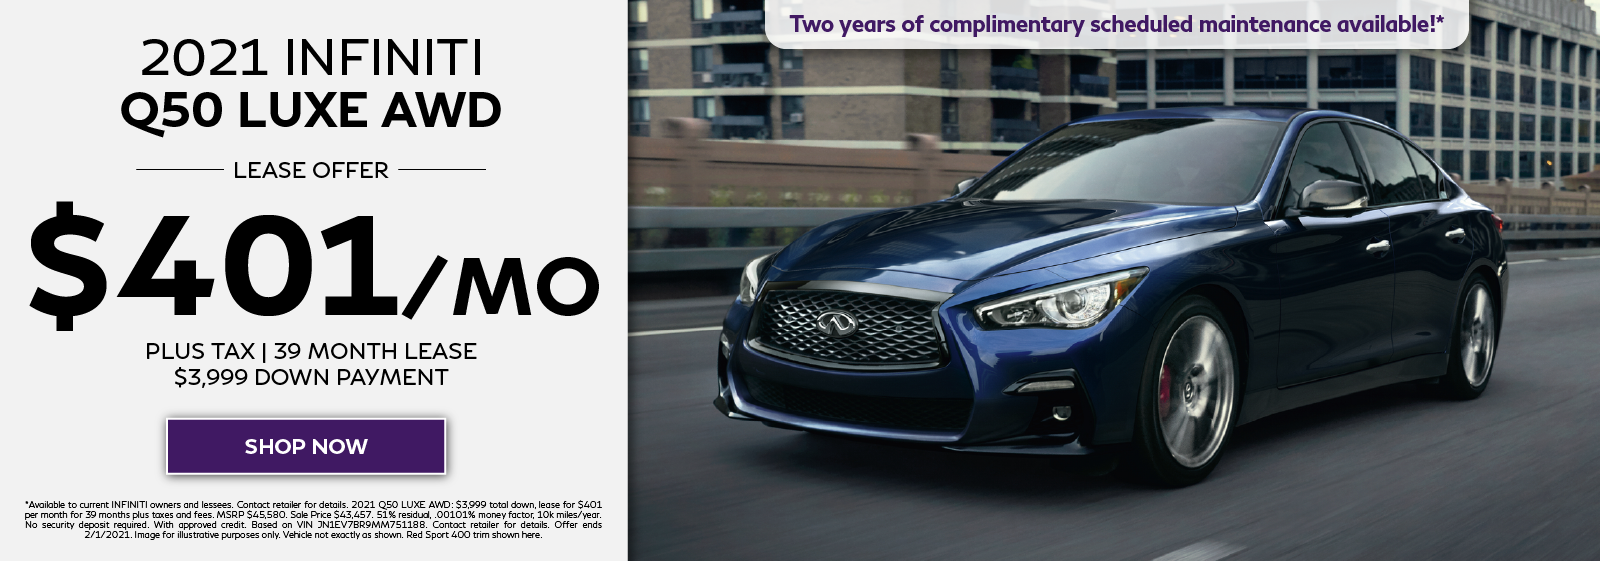 Well-qualified lessees can lease a new 2021 INFINITI Q50 LUXE AWD for $401 per month for 39 months plus get two years complimentary scheduled maintenance. Click to shop now.